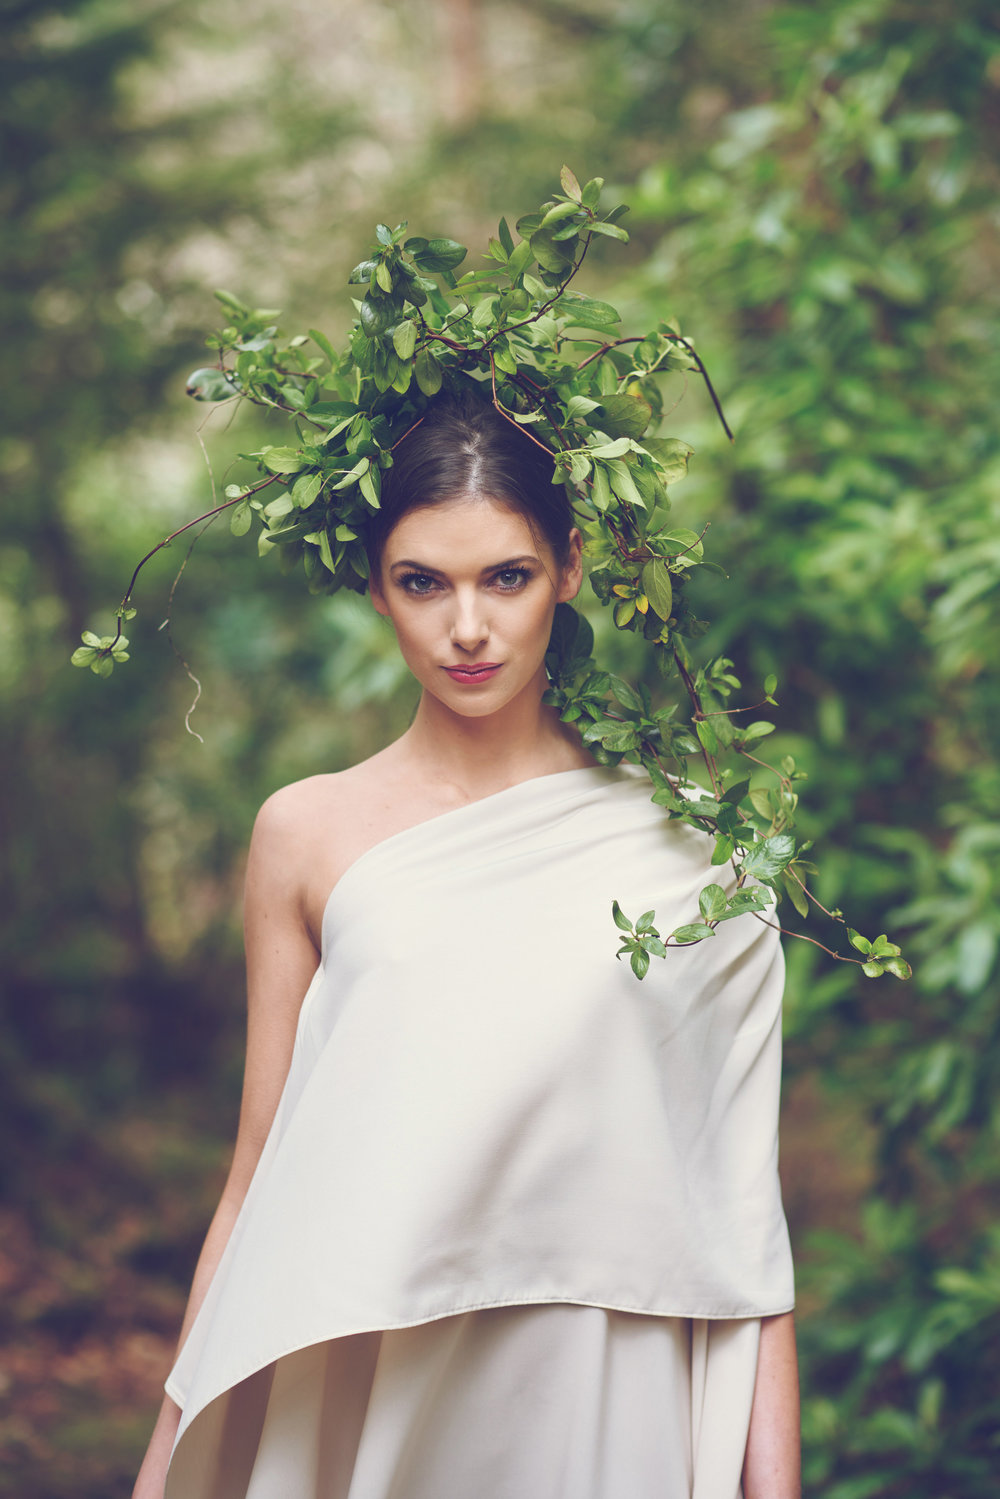 A fashion experience showcasing Summer collections from top Irish & Kerry Designers with a focus on Sustainable Fashion